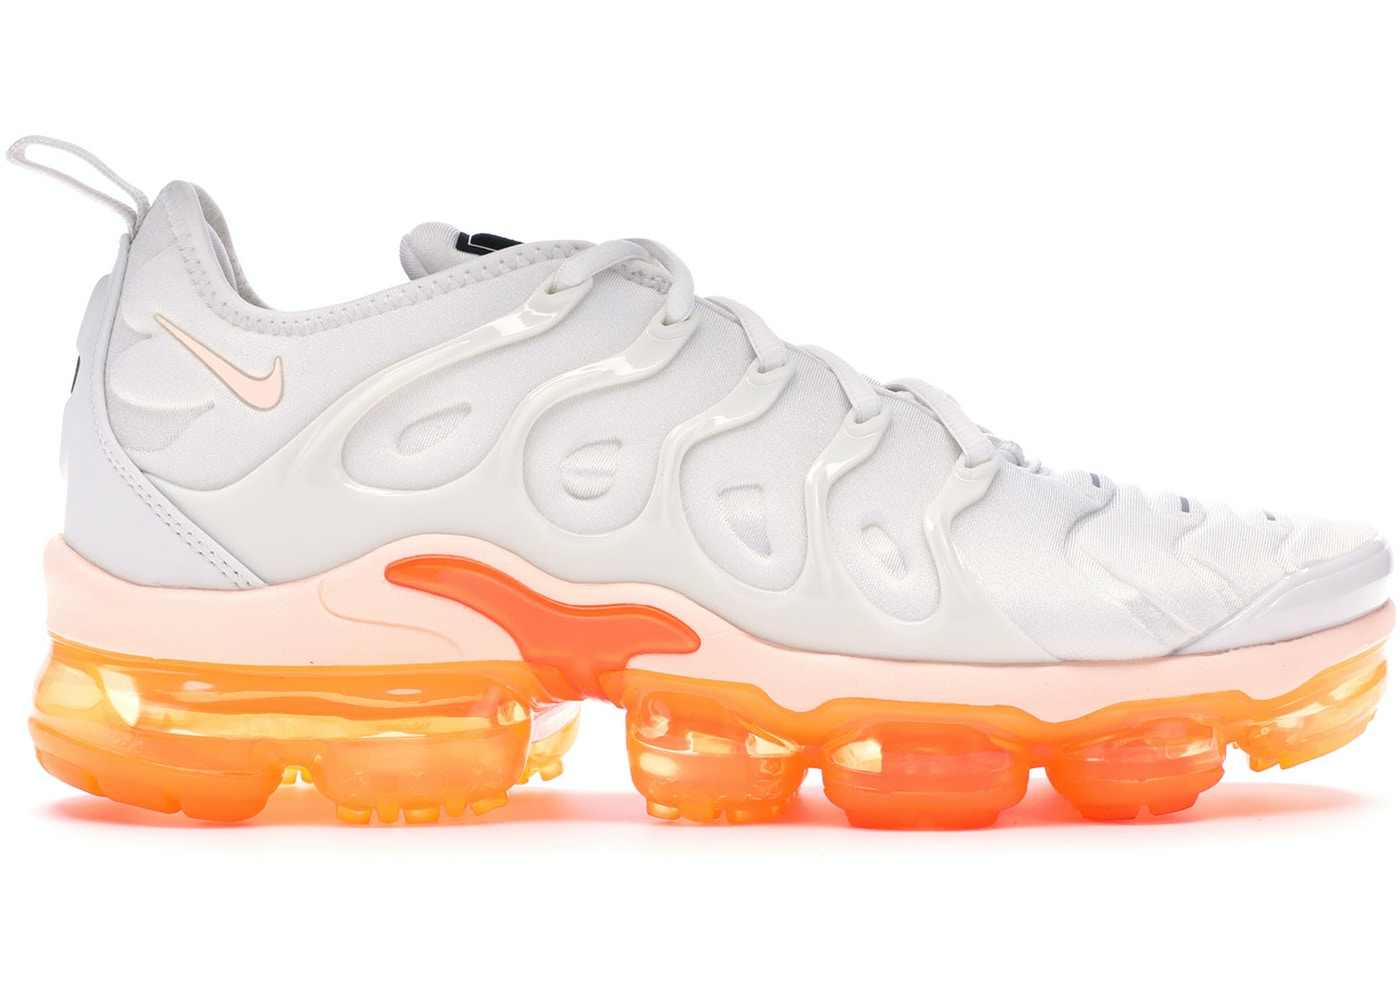 separation shoes d8405 89aa6 Air VaporMax Plus Creamsicle (W)